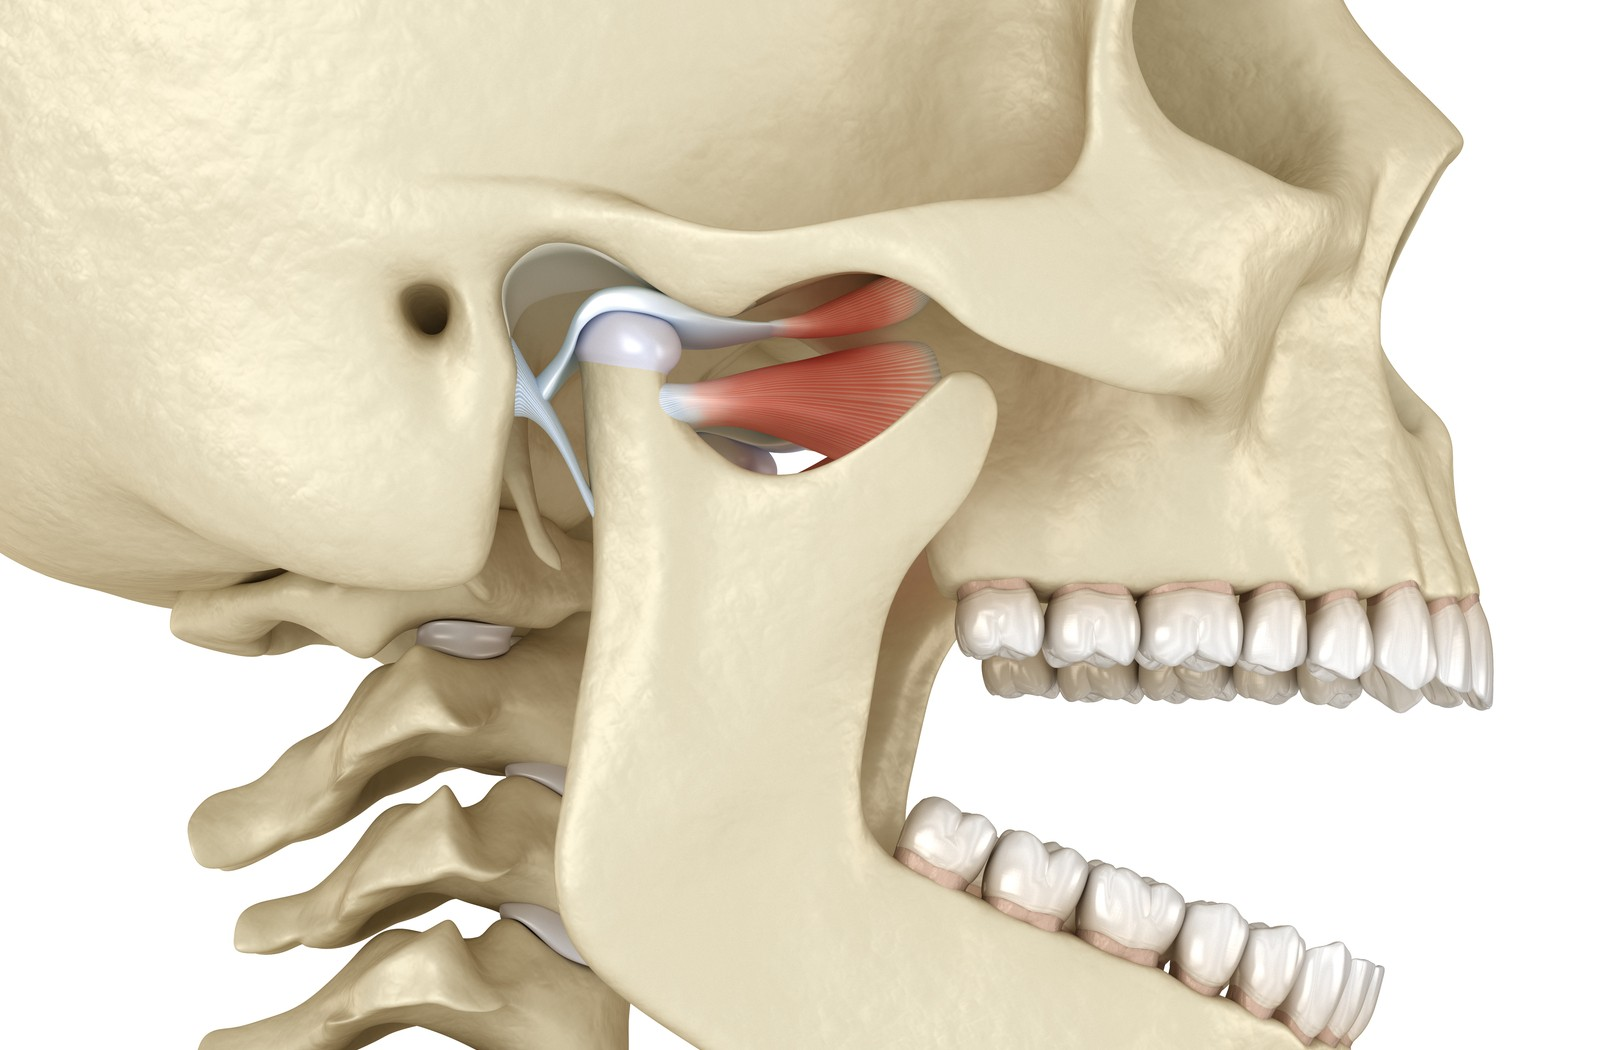 A 3-D rendering of the human skull highlighting the temporomandibular joint by colouring the muscles and bones